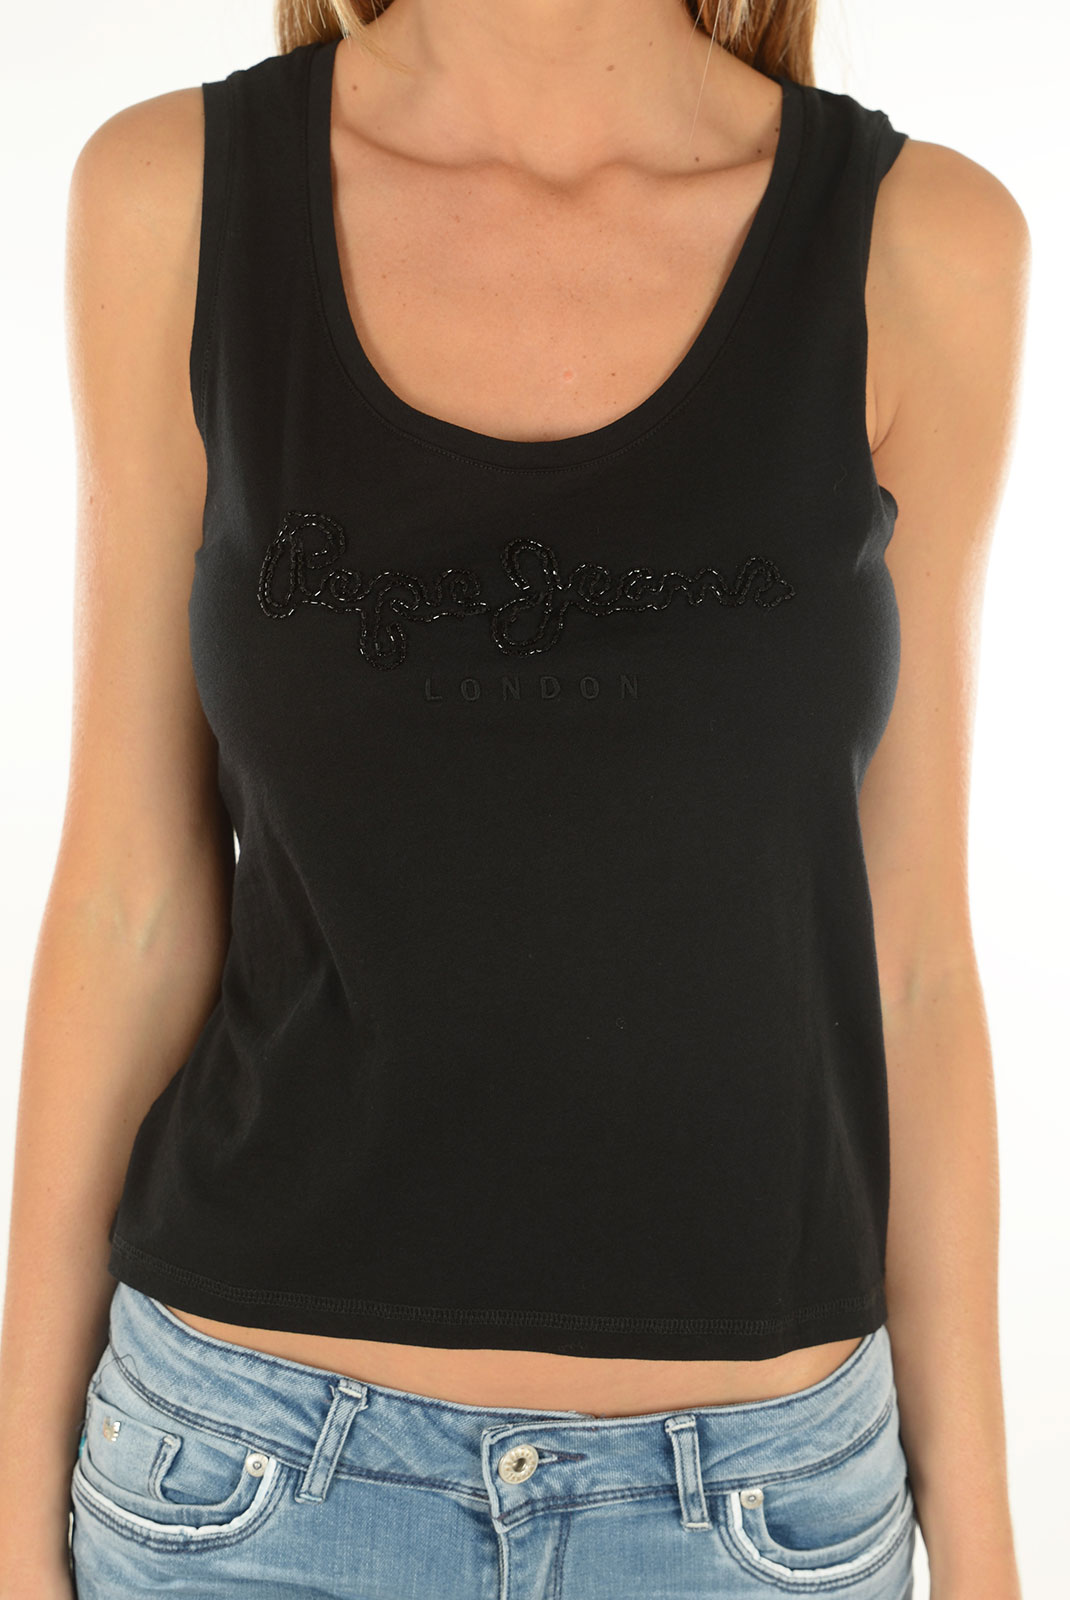 Tops & Tee shirts  Pepe jeans PL502591 MILLA 999 BLACK